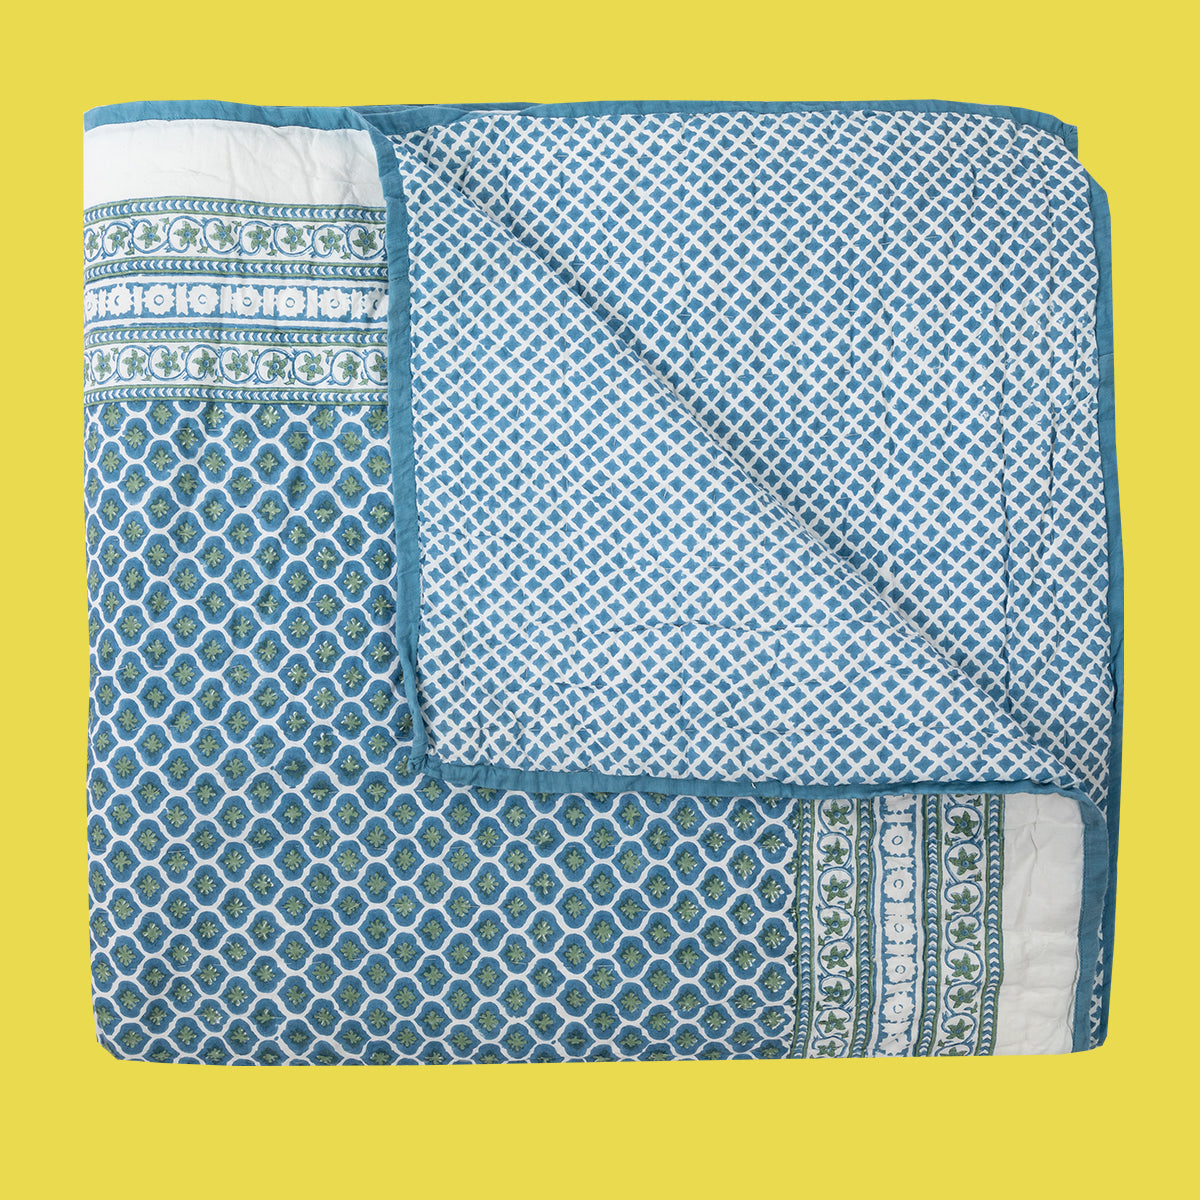 Wicklewood hand block printed bed quilts in 100% machine washable cotton